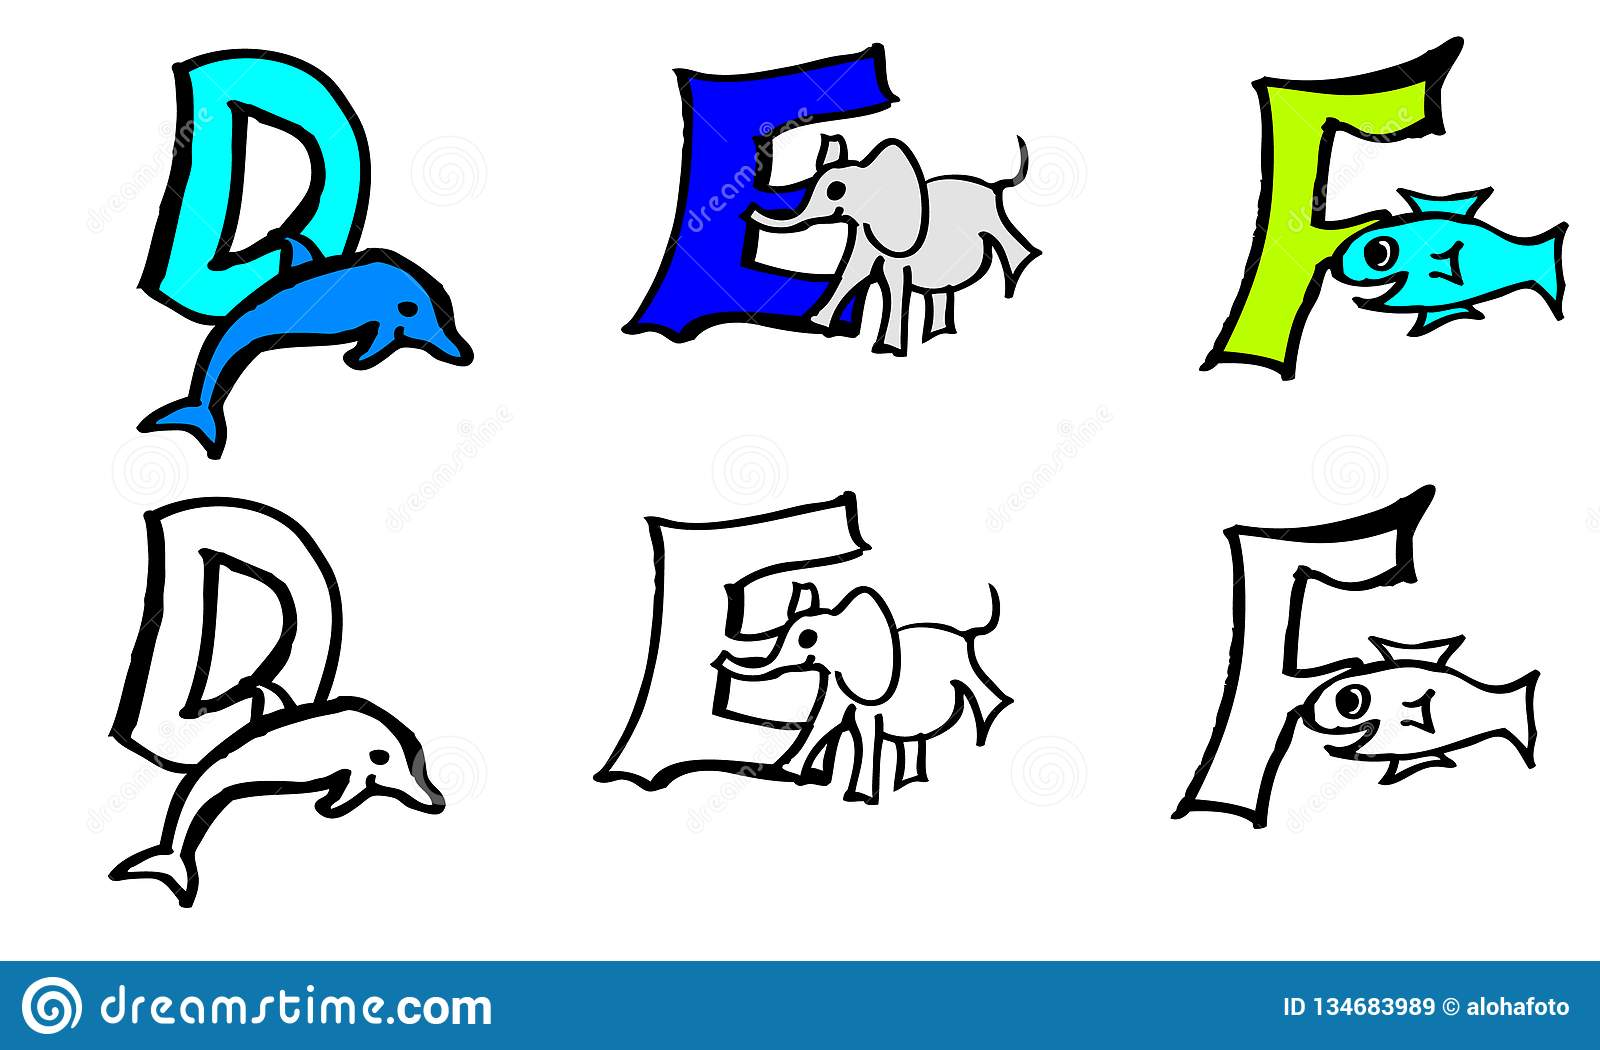 Part 2 d e f coloring book letters with pictures in german and english